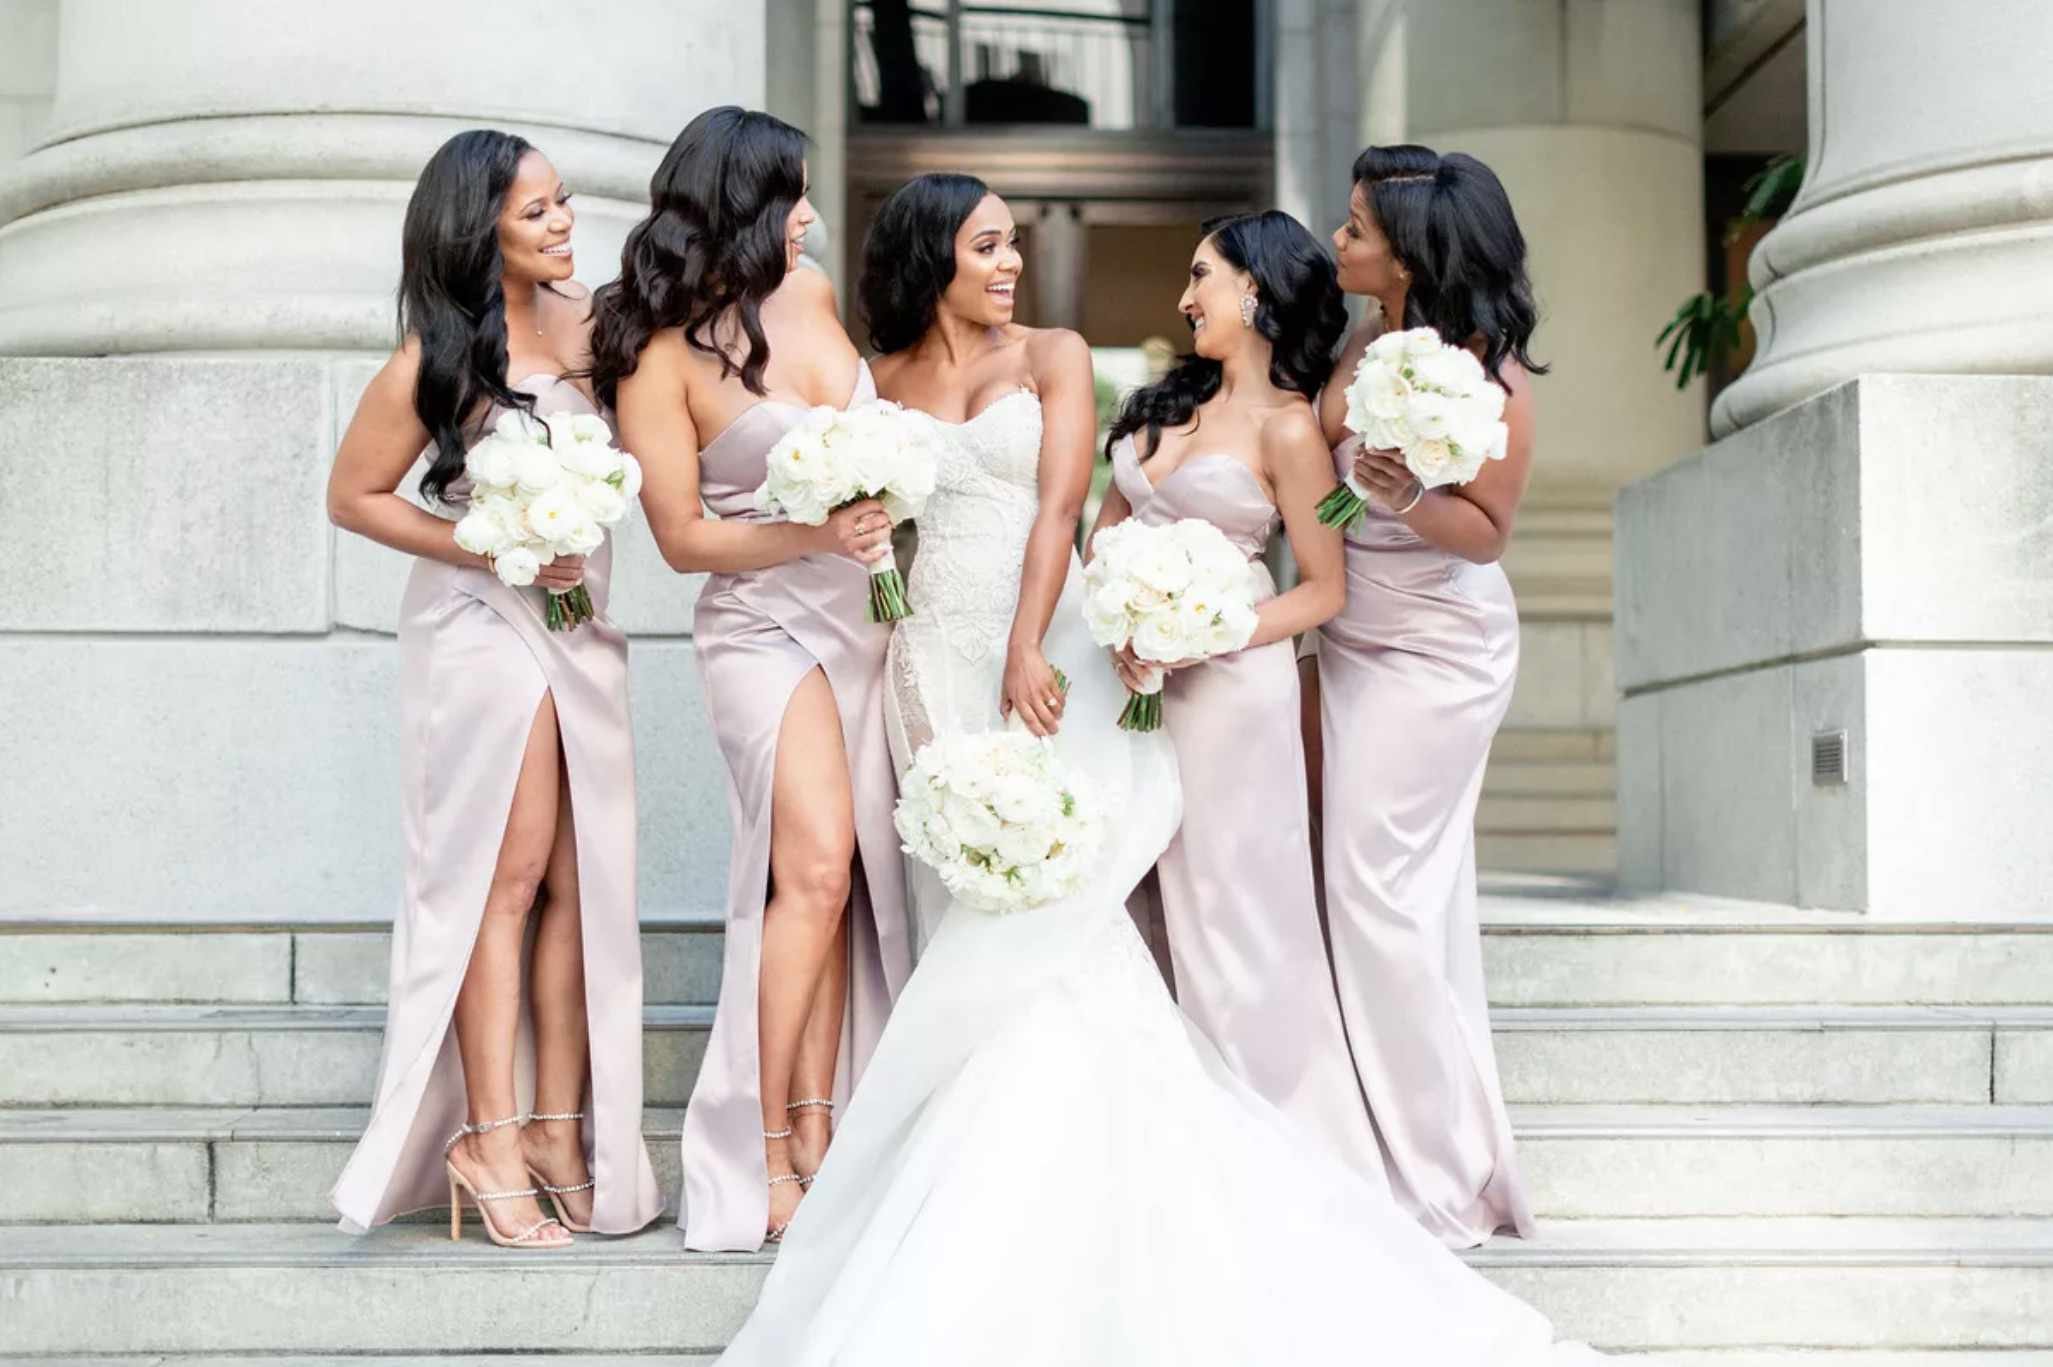 Bride with bridesmaids in matching dresses on steps